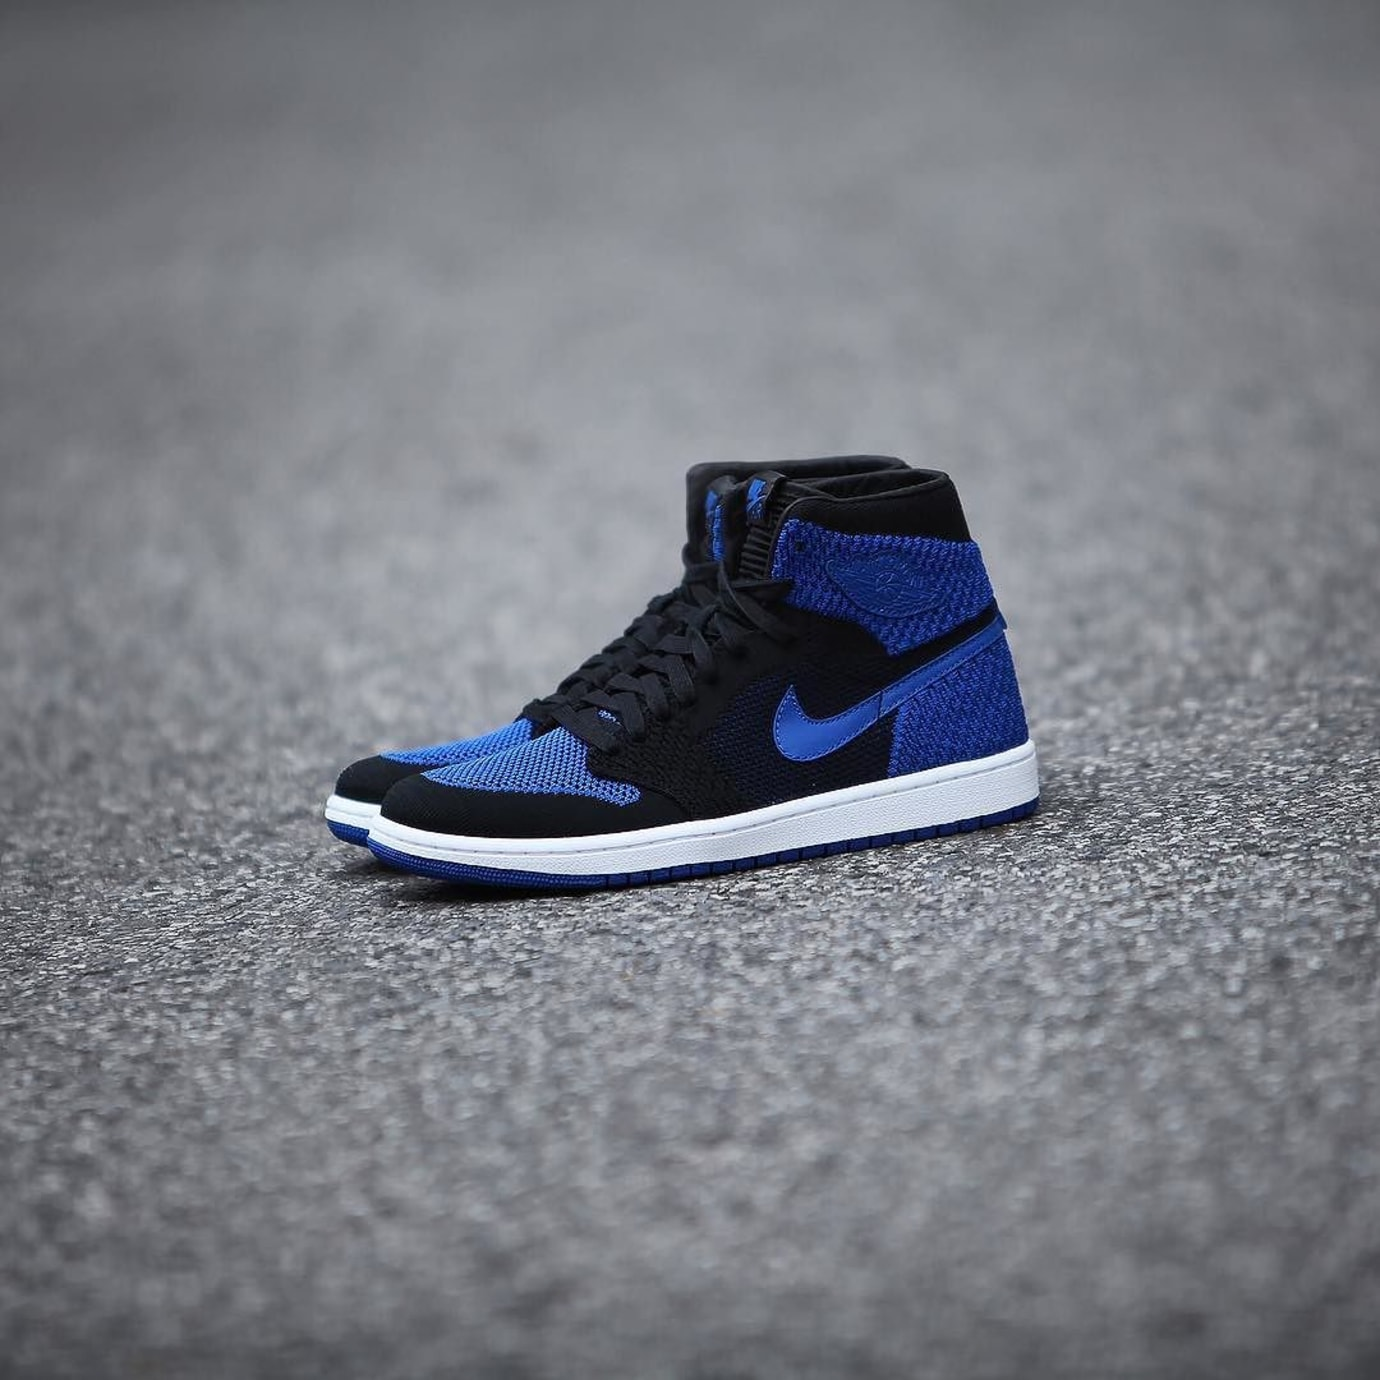 Air Jordan 1 Flyknit Royal Release Date 919704-006 (2)